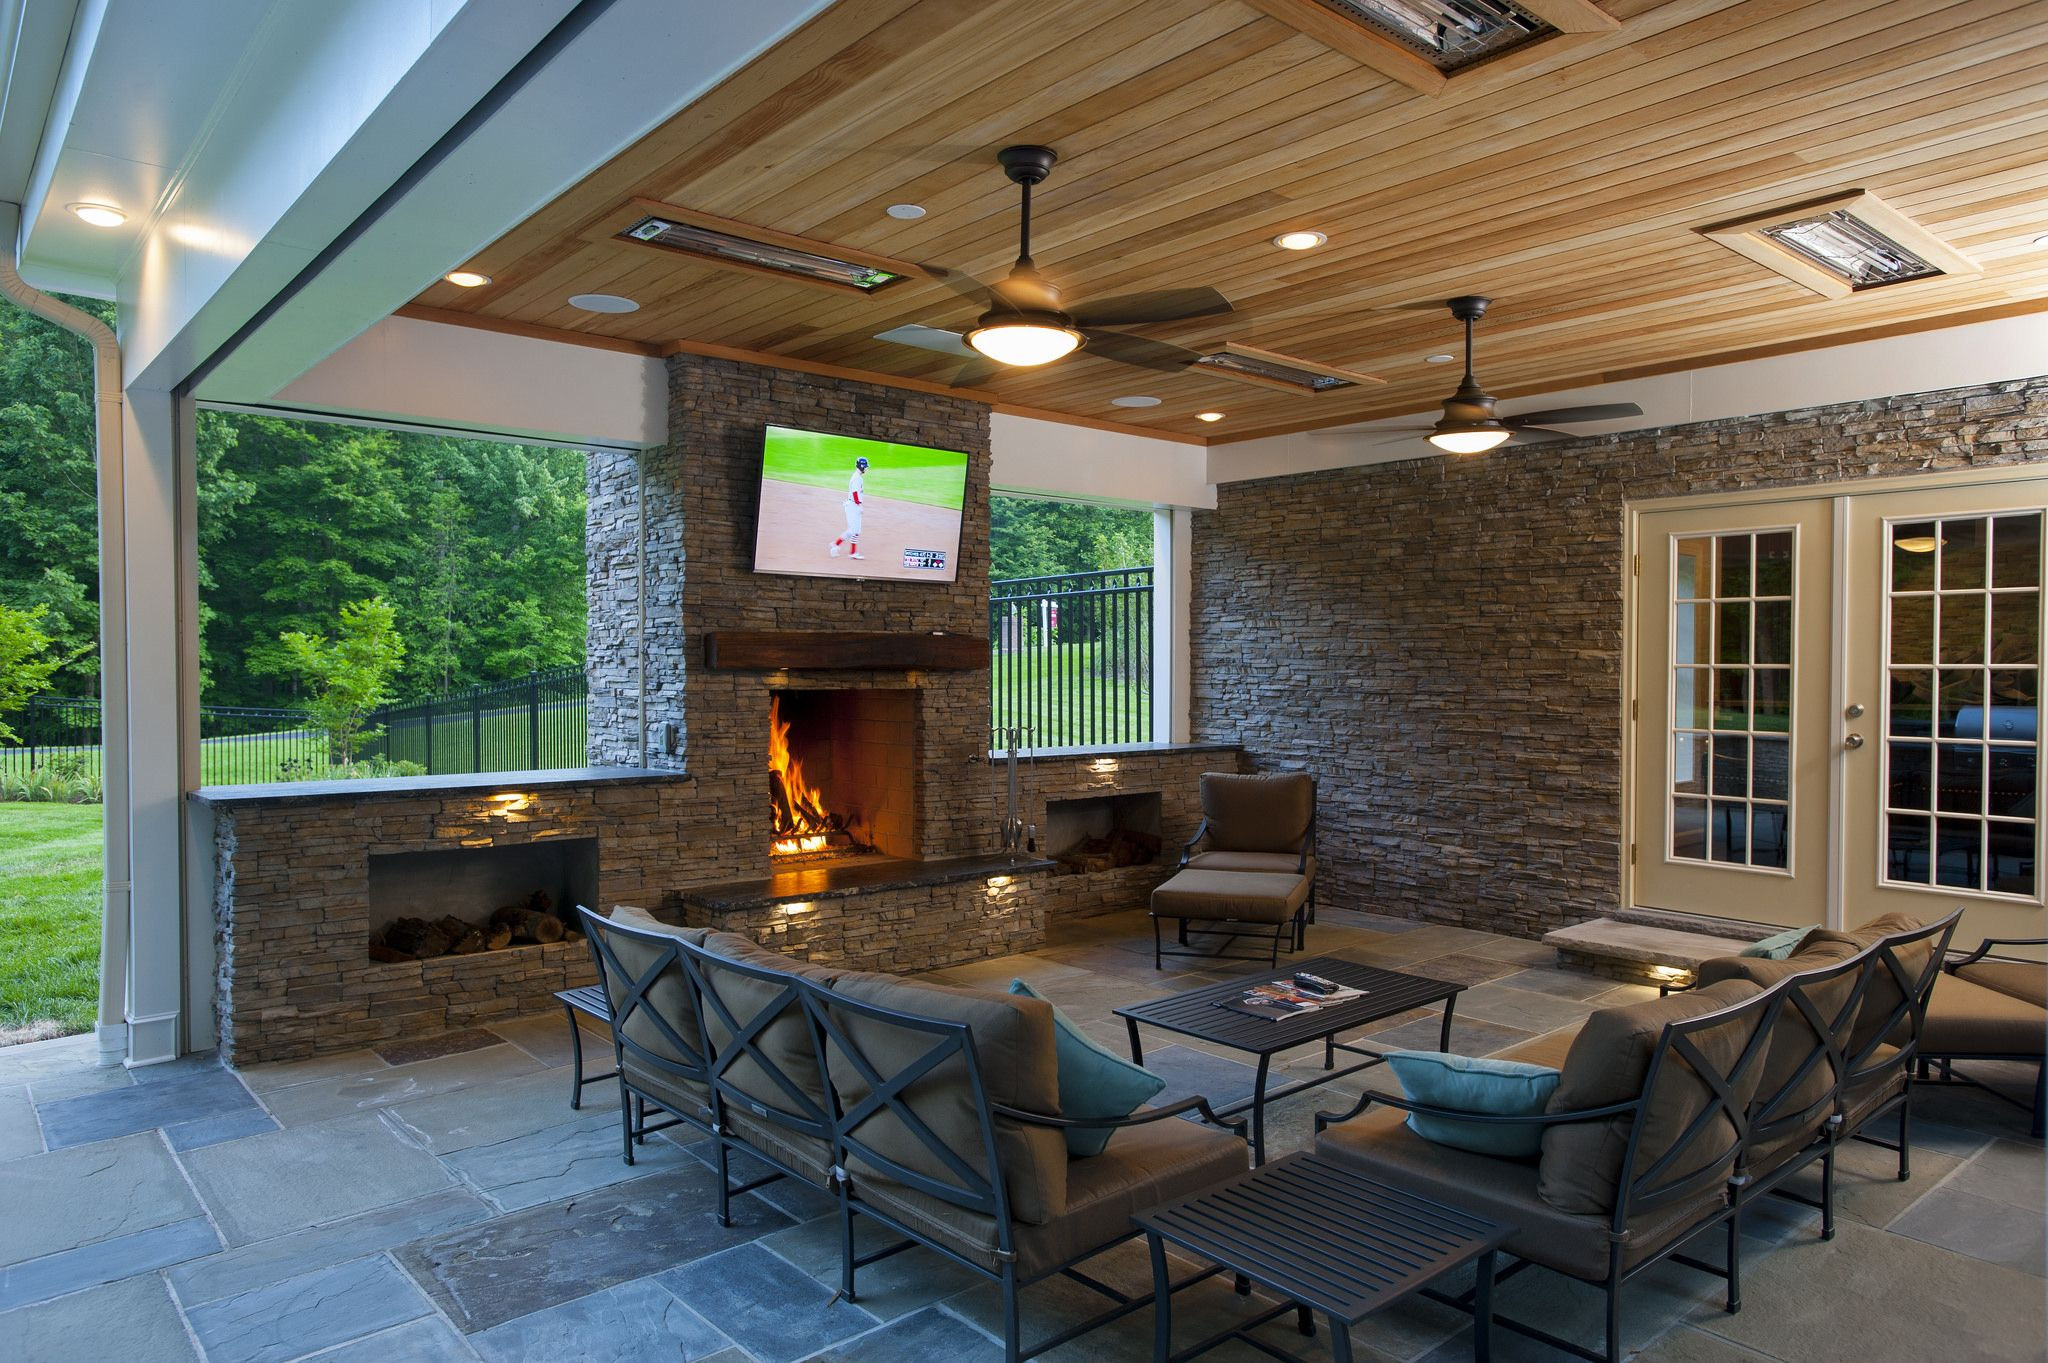 21st century outdoor living in clifton va infrared heater